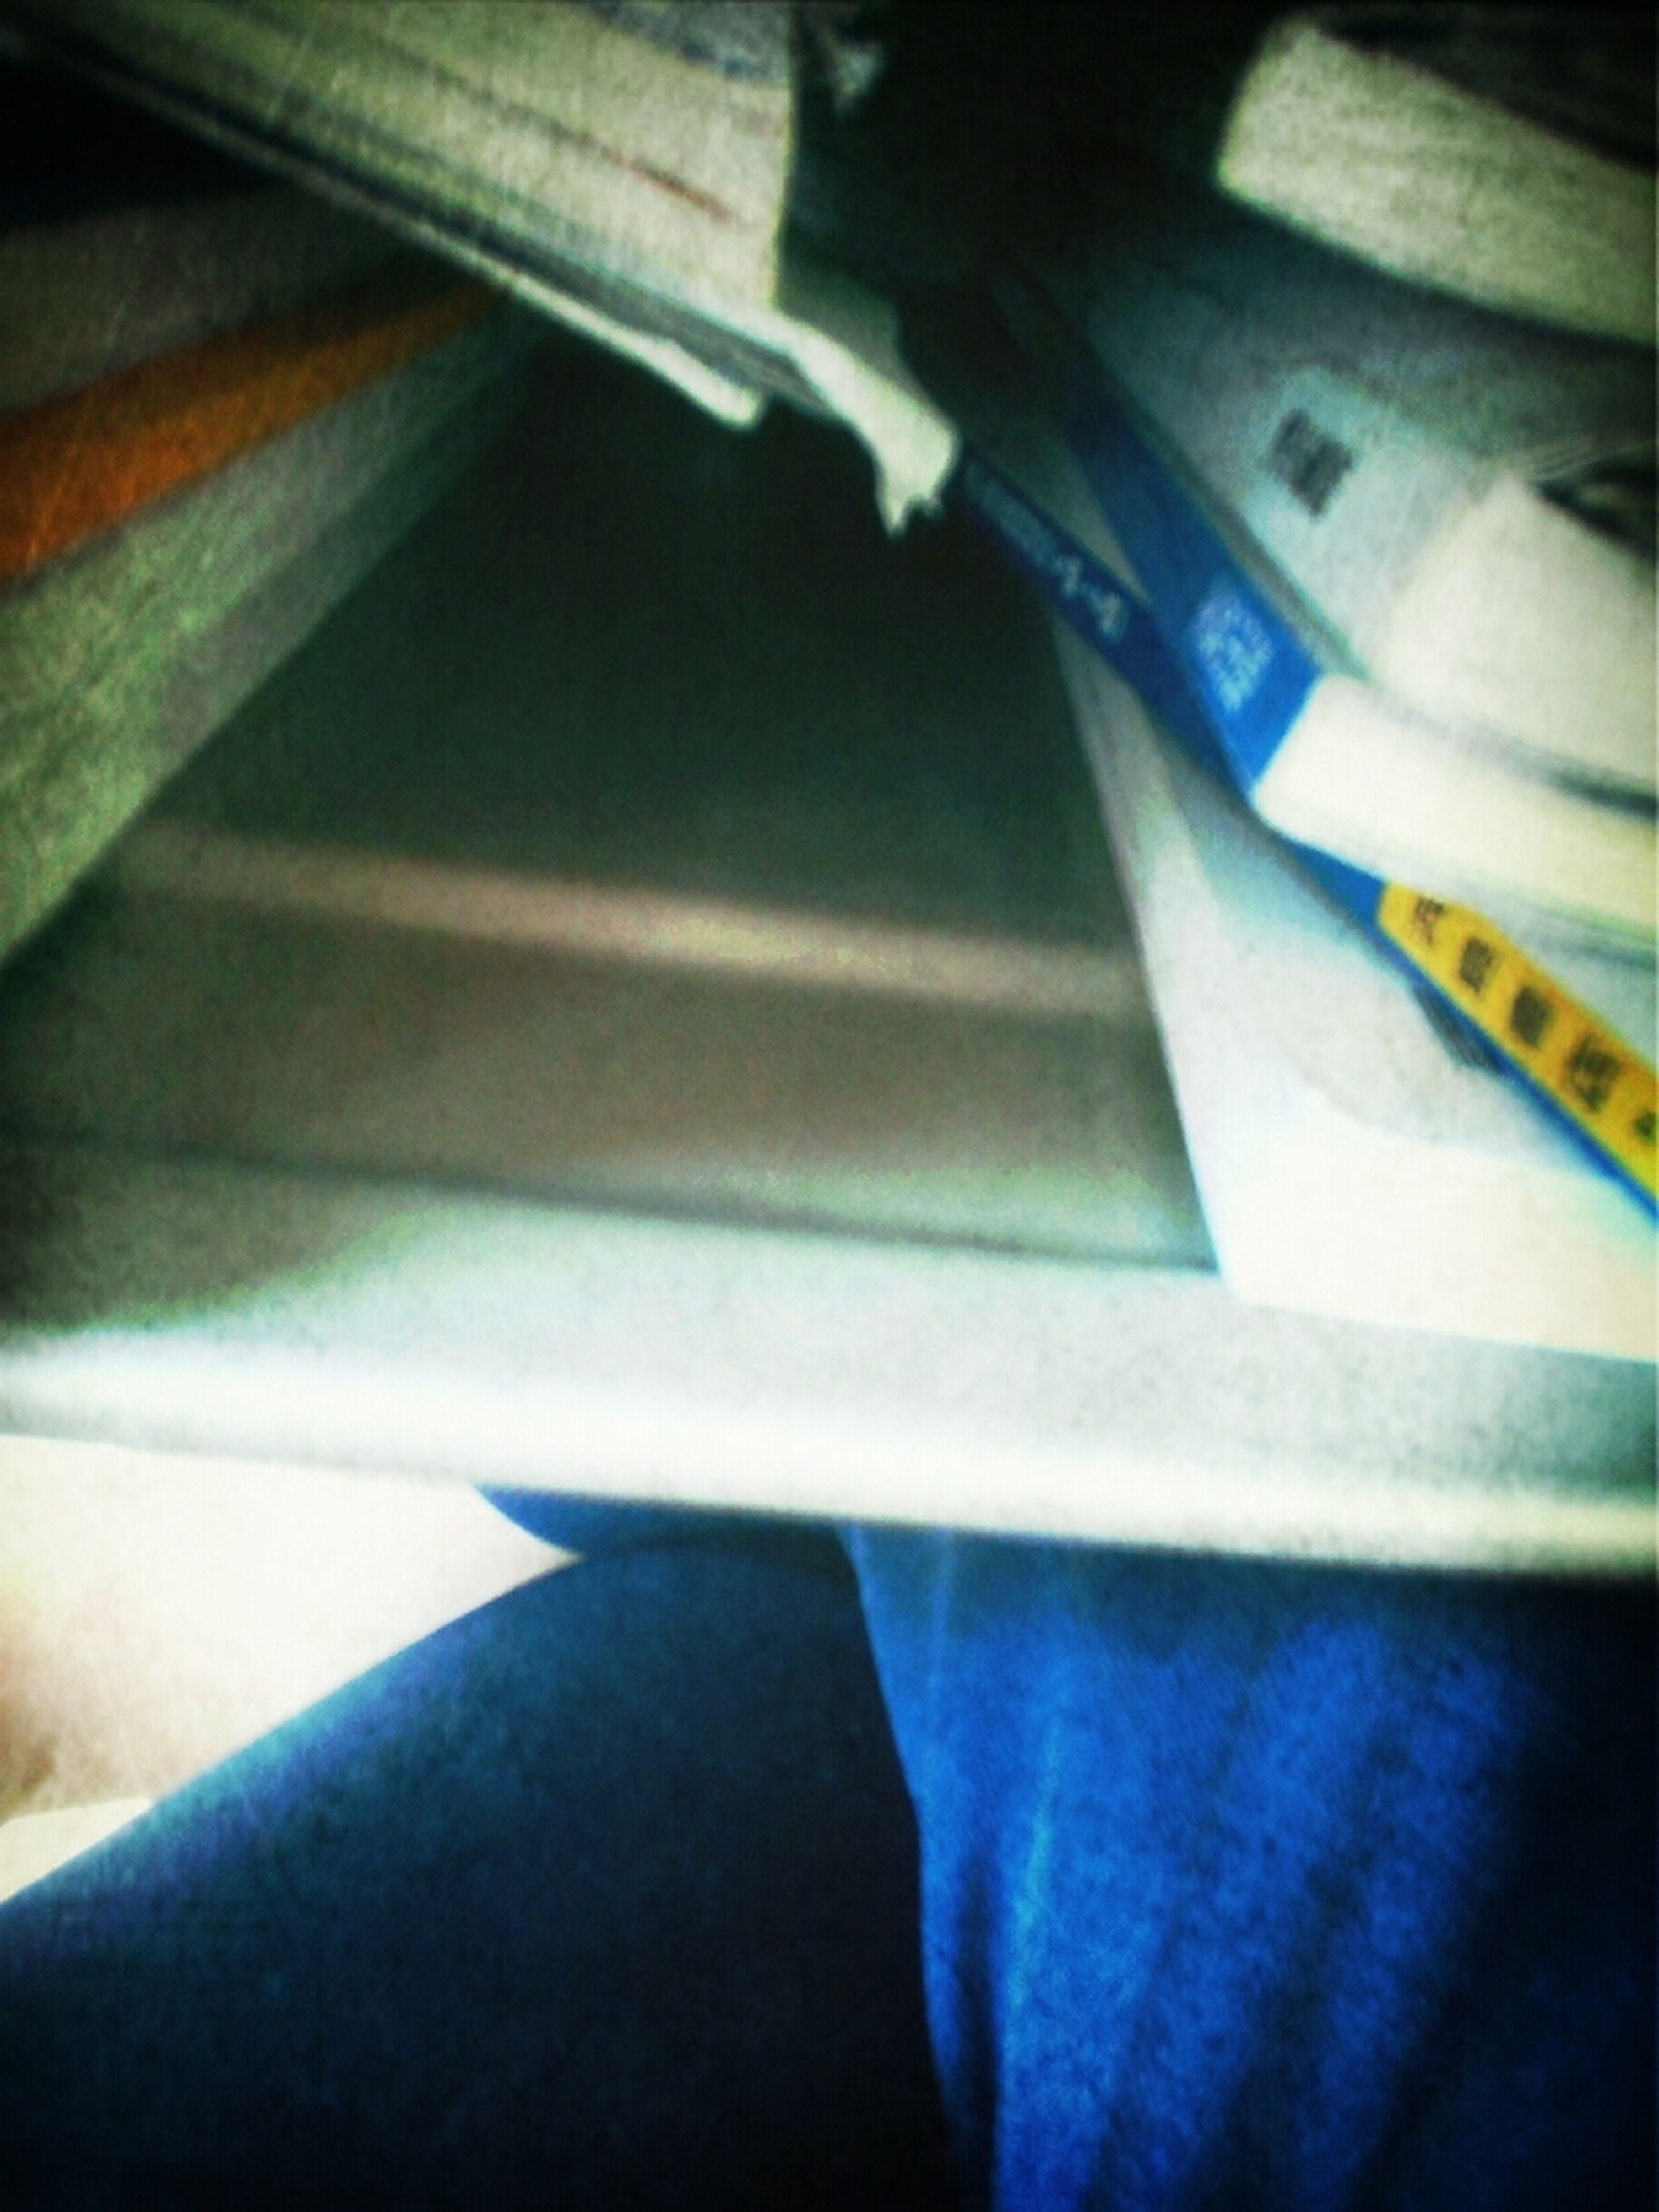 indoors, transportation, close-up, part of, mode of transport, vehicle interior, high angle view, blue, cropped, paper, book, no people, technology, pen, education, detail, selective focus, travel, day, vehicle seat